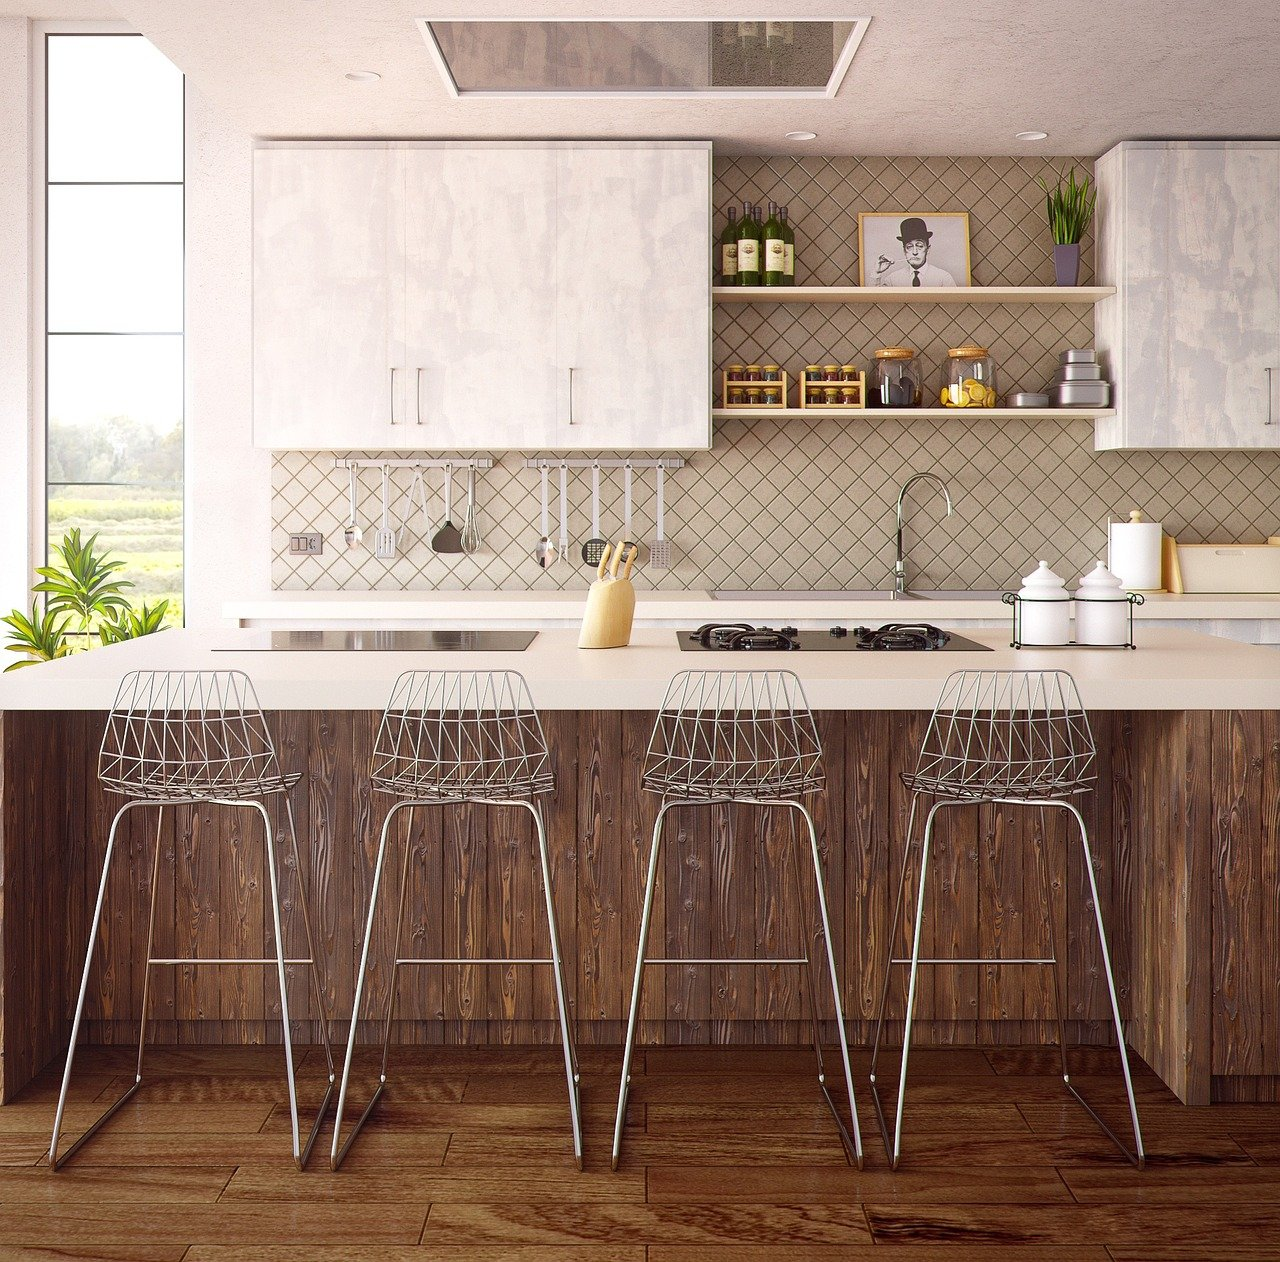 image - Simple Home Ideas that Will Make Your Kitchen Livelier